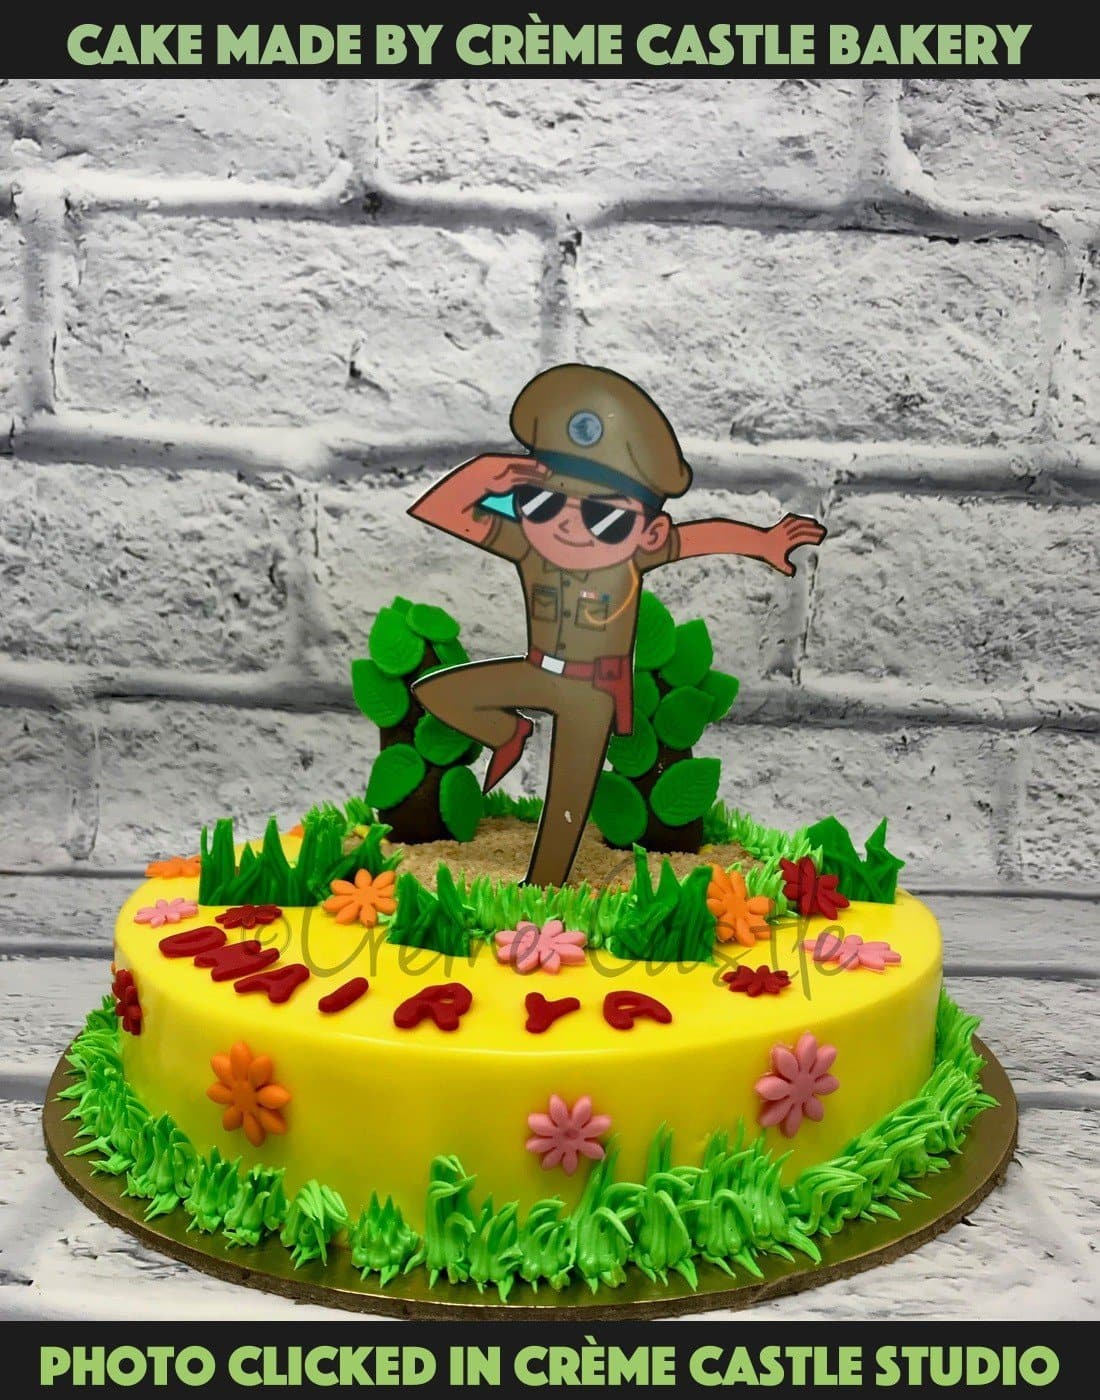 A little singham theme cake in yellow and green theme with Little Singham character in 2D at top of the cake